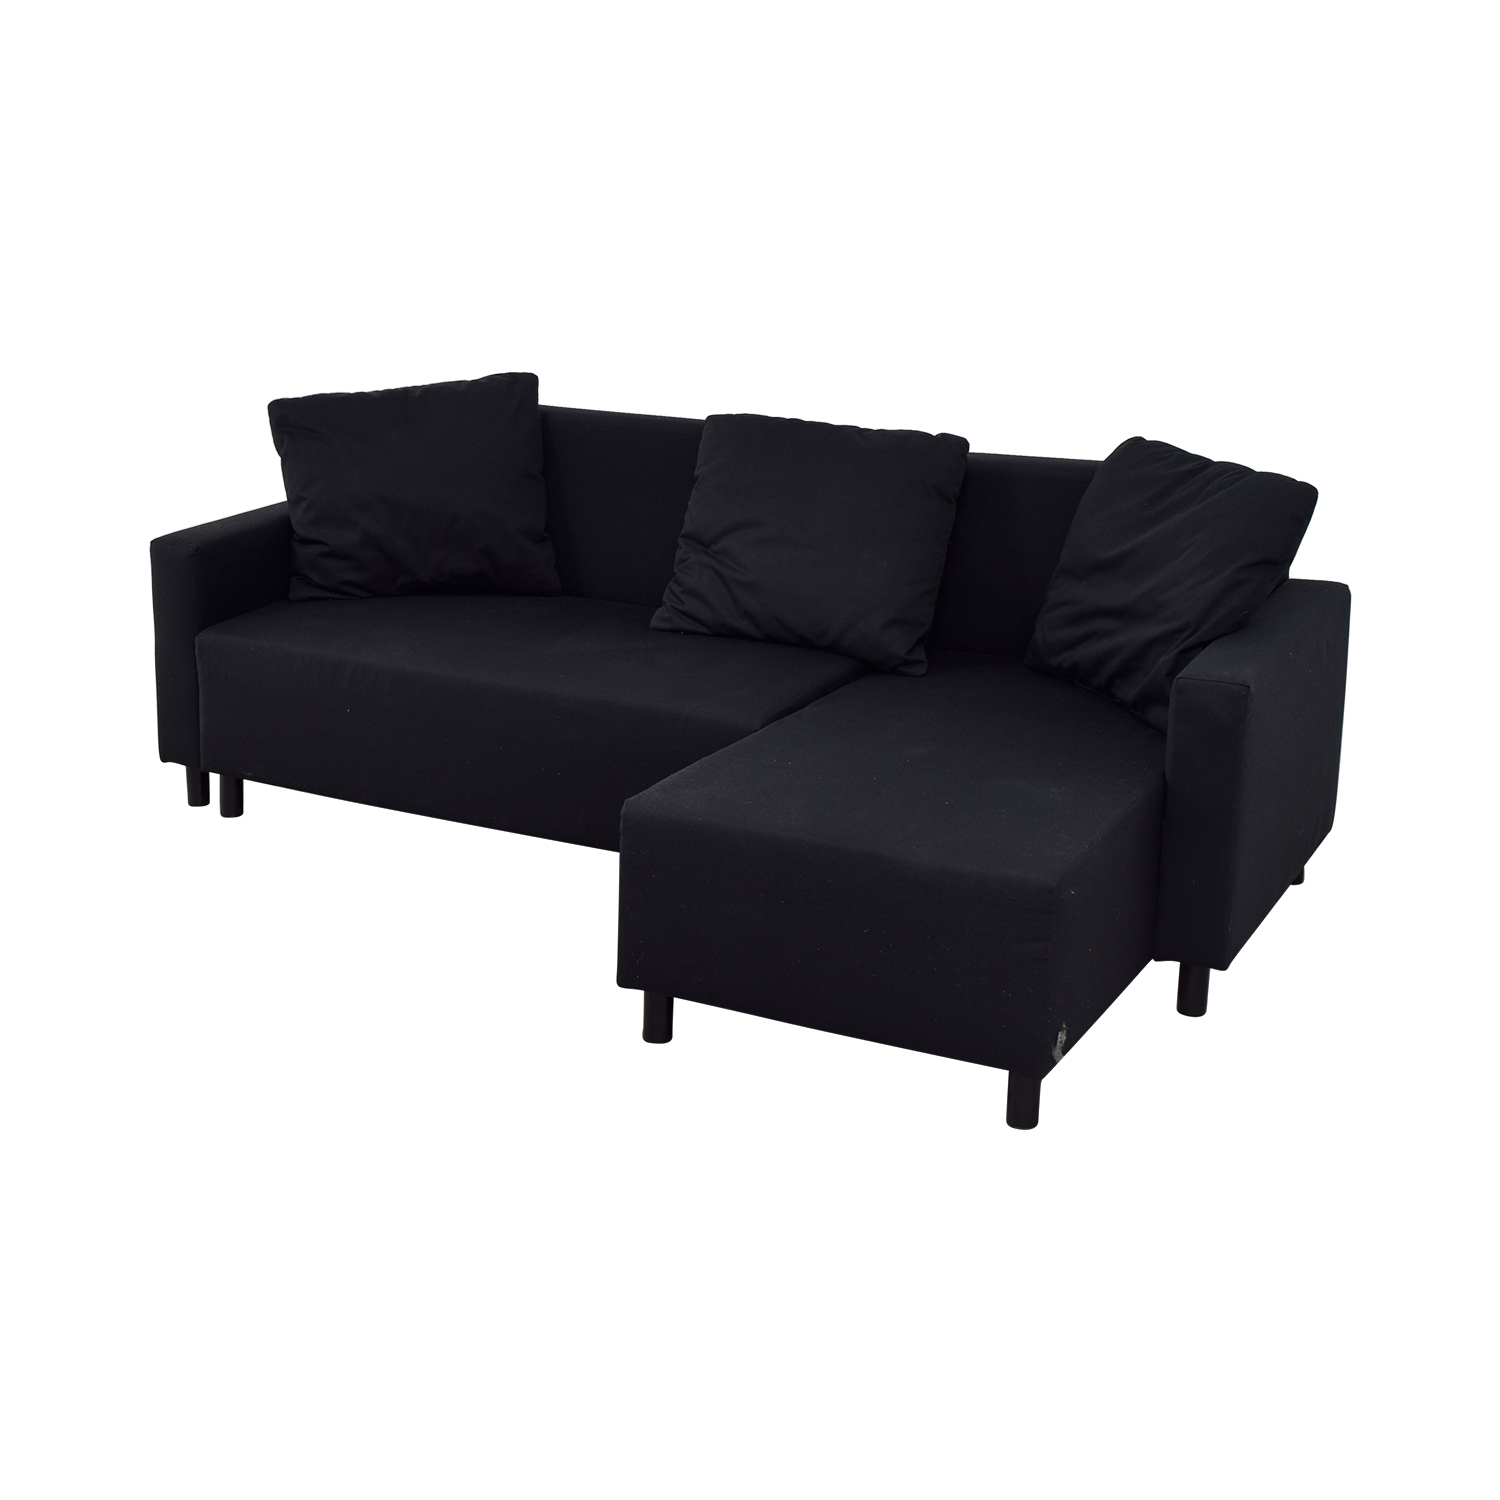 Black Sleeper Sofa With Chaise Review Home Decor